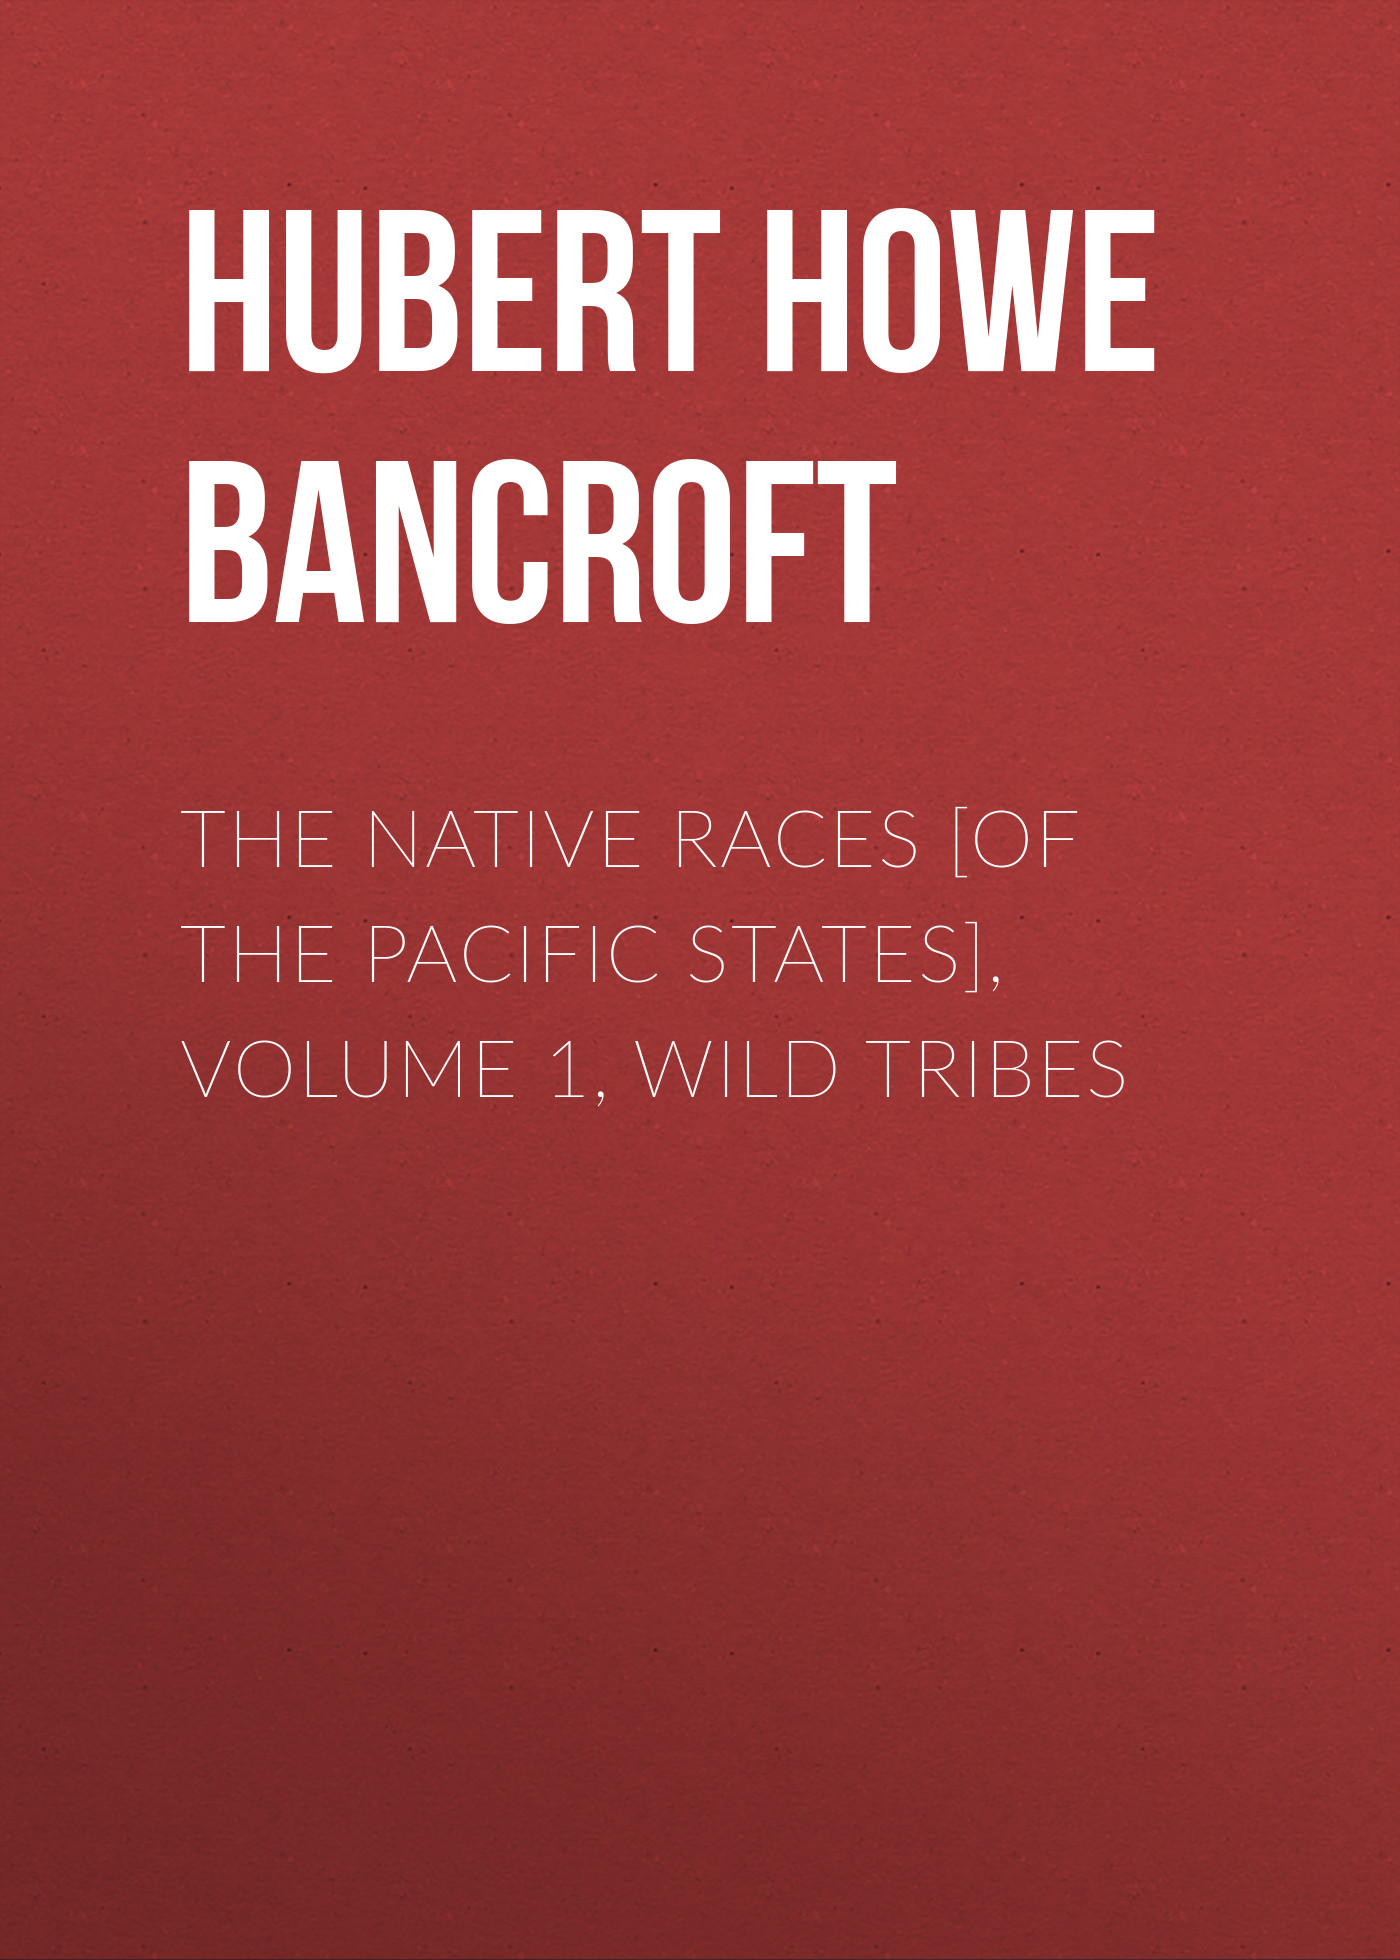 Hubert Howe Bancroft The Native Races [of the Pacific states], Volume 1, Wild Tribes bancroft hubert howe the works of hubert howe bancroft volume 20 page 5 page 5 page 9